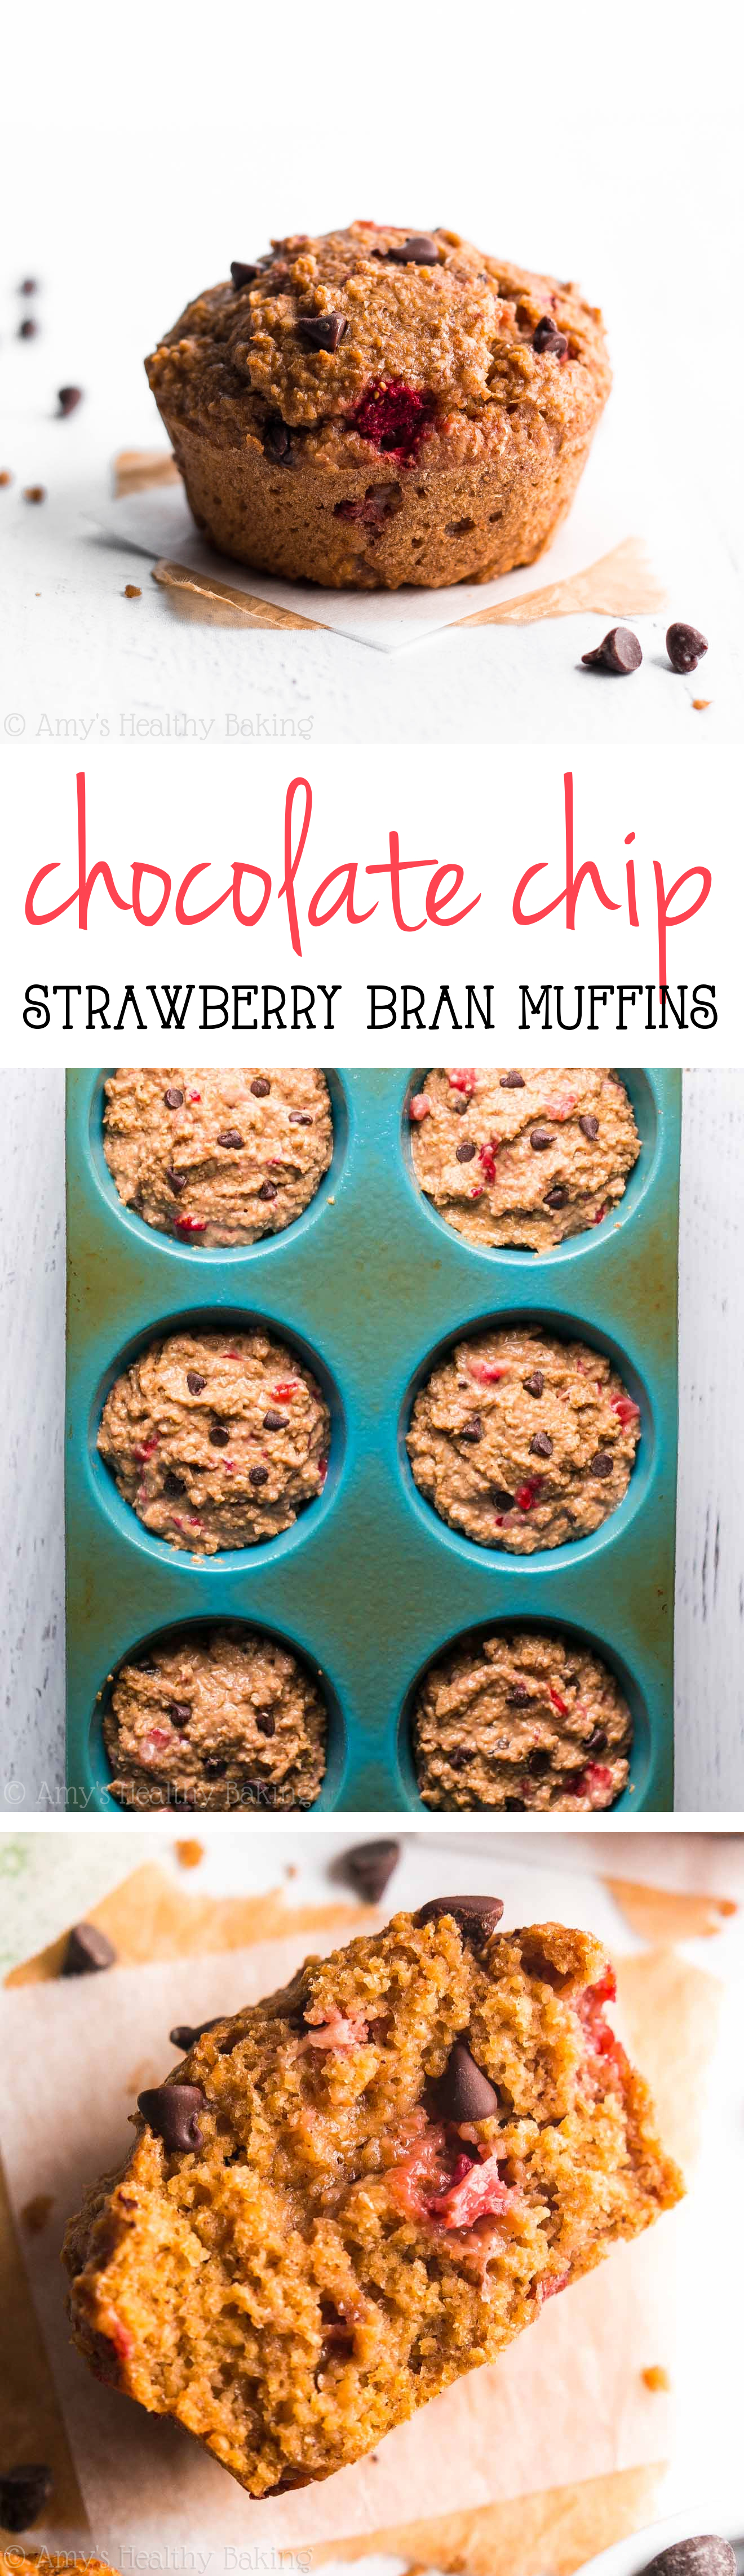 One simple trick gives these healthy chocolate-filled muffins the same texture as cupcakes! They're the perfect skinny breakfast treat!